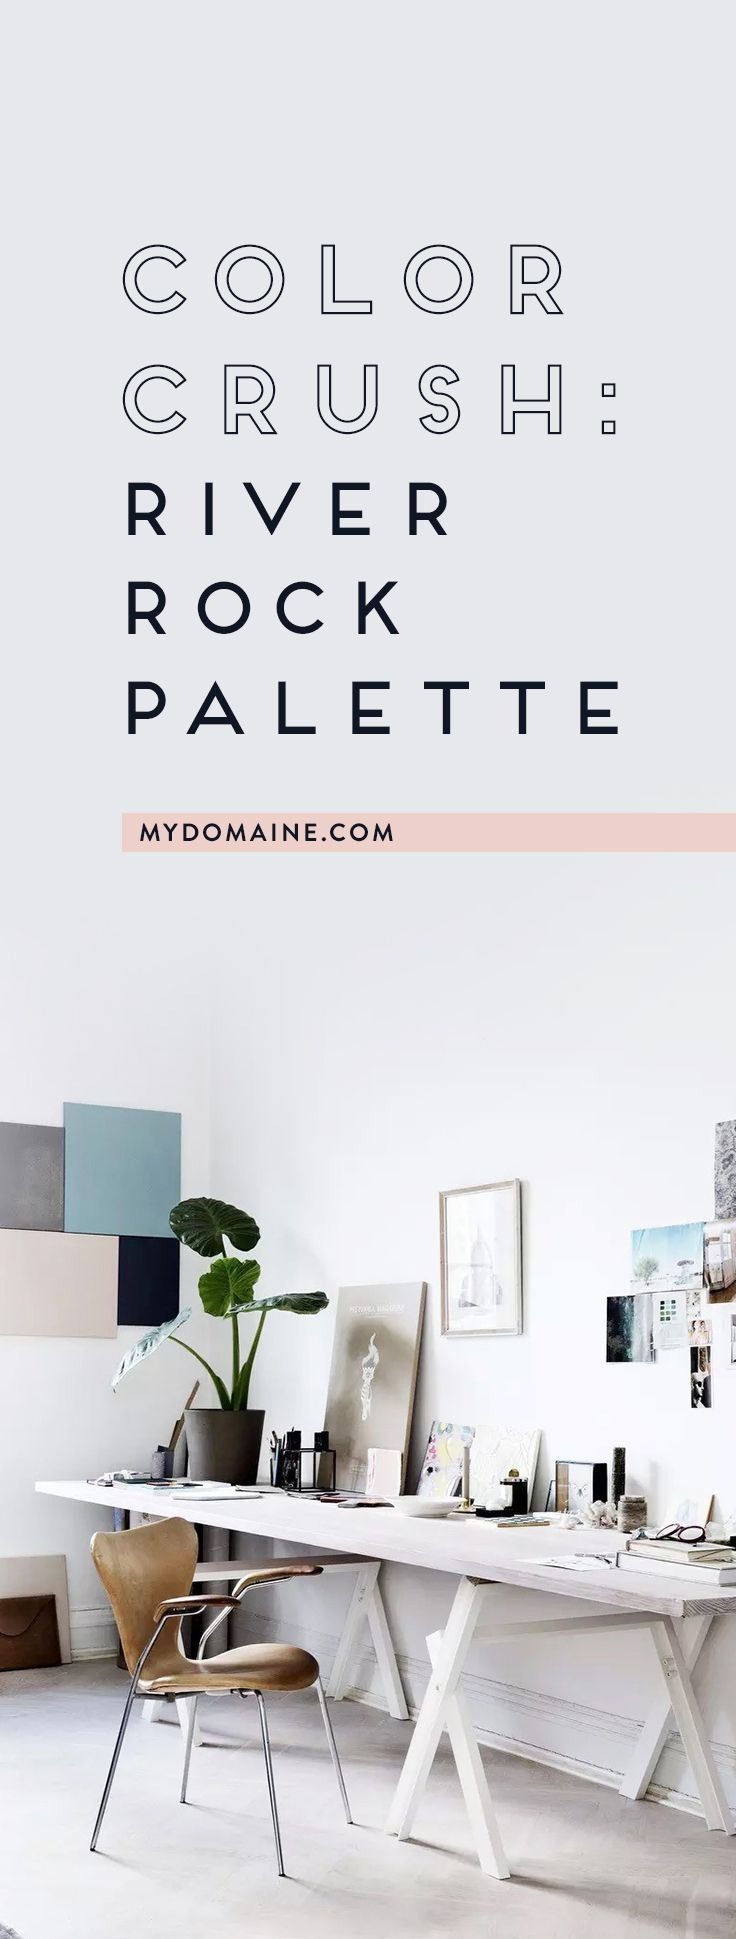 This new décor color palette is a must-apply to all your interiors